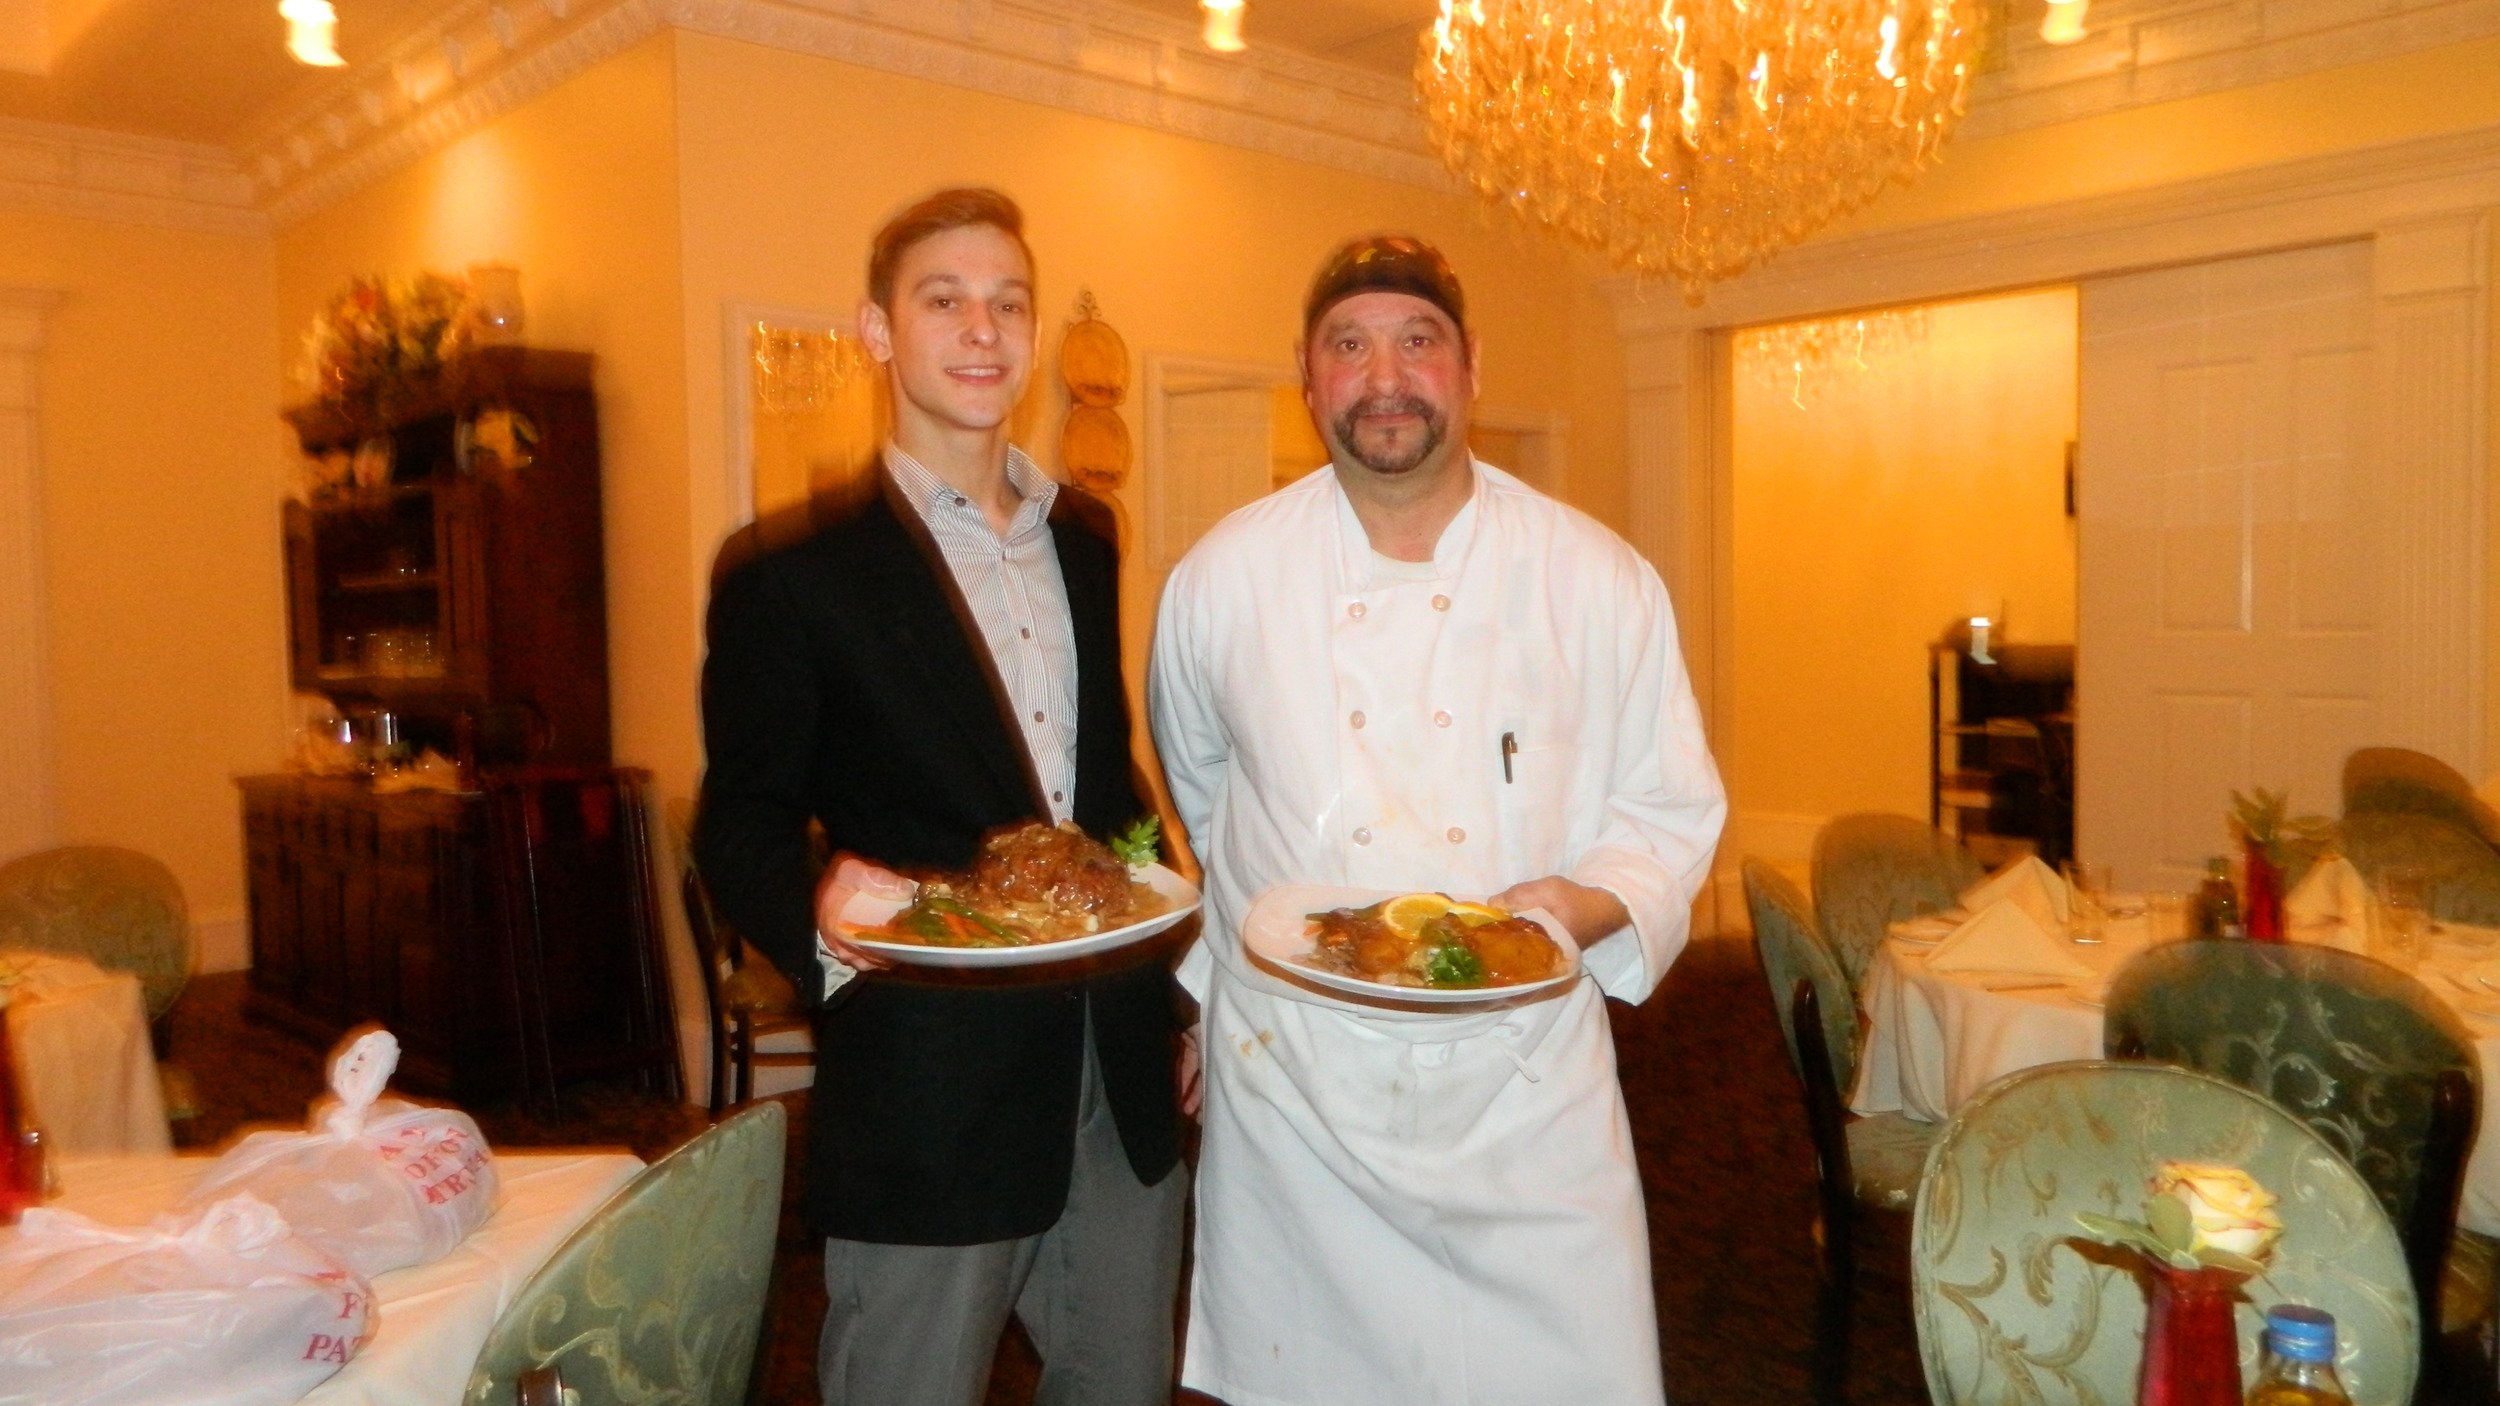 Cinque Terre owner, Chef Anthony Page, right, and son, Anthony, present crispy duck and stuffed pork chop entrees.